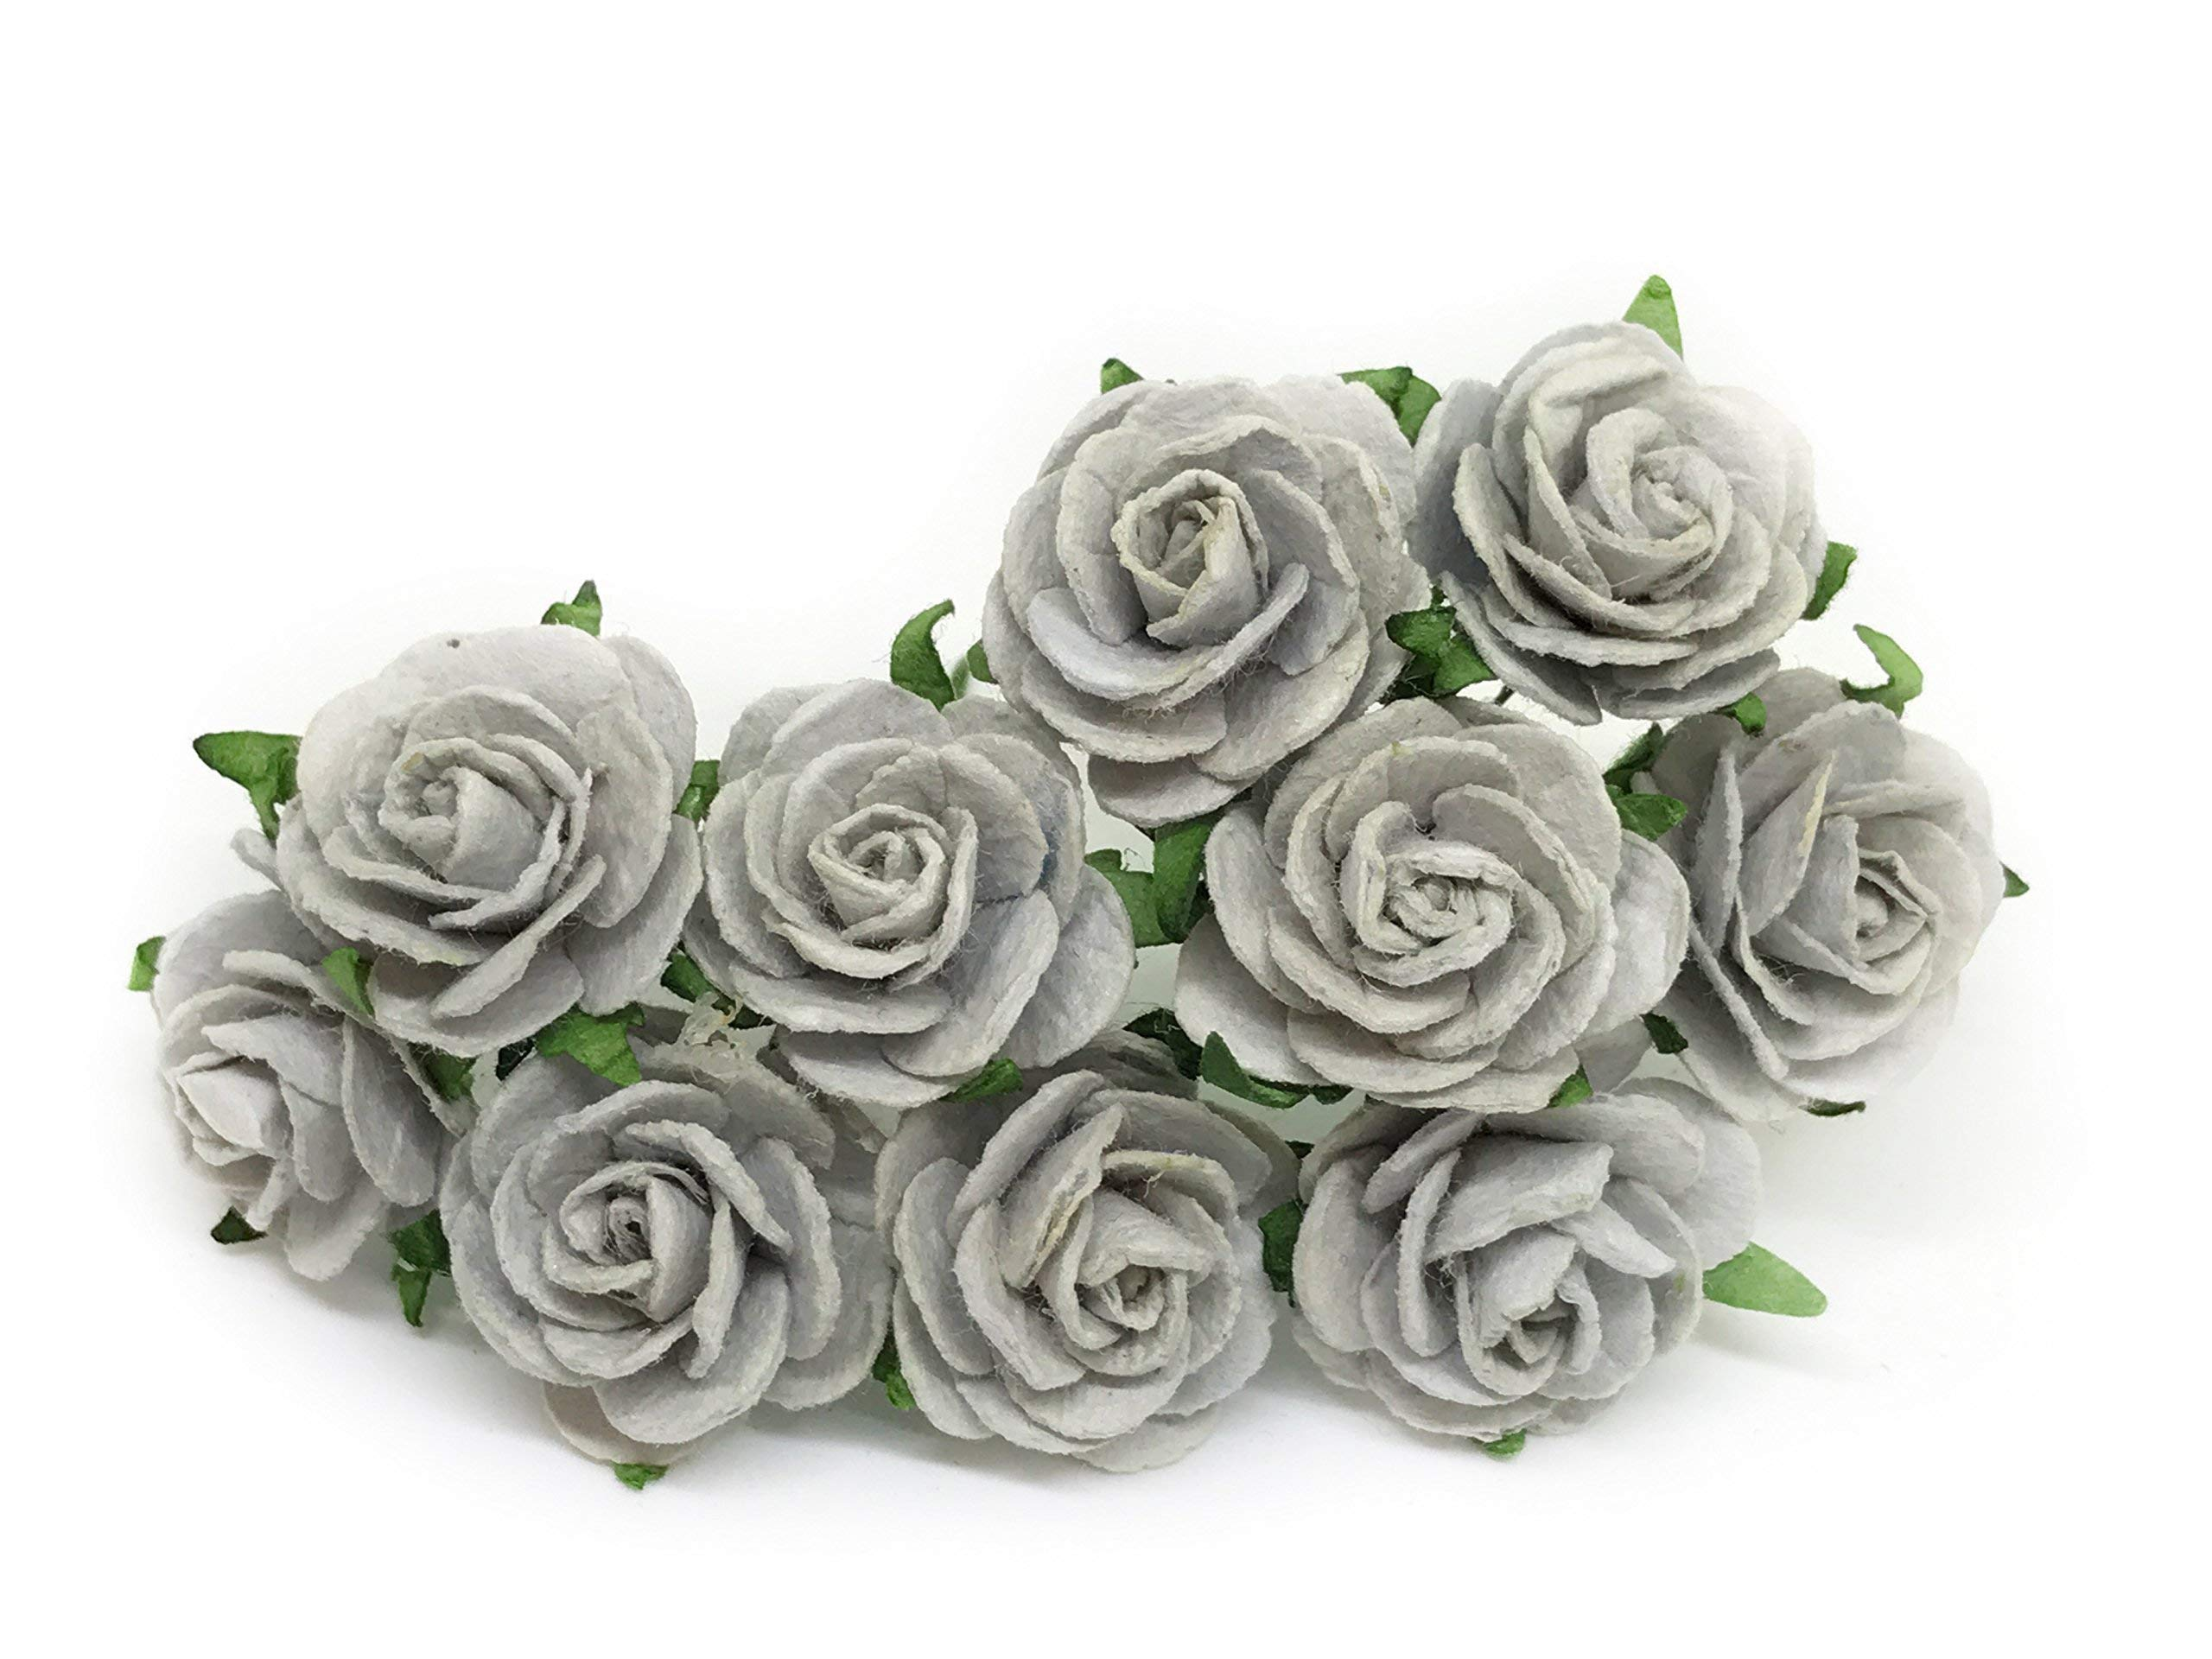 1-Grey-Paper-Flowers-Paper-Rose-Artificial-Flowers-Fake-Flowers-Artificial-Roses-Paper-Craft-Flowers-Paper-Rose-Flower-Mulberry-Paper-Flowers-20-Pieces